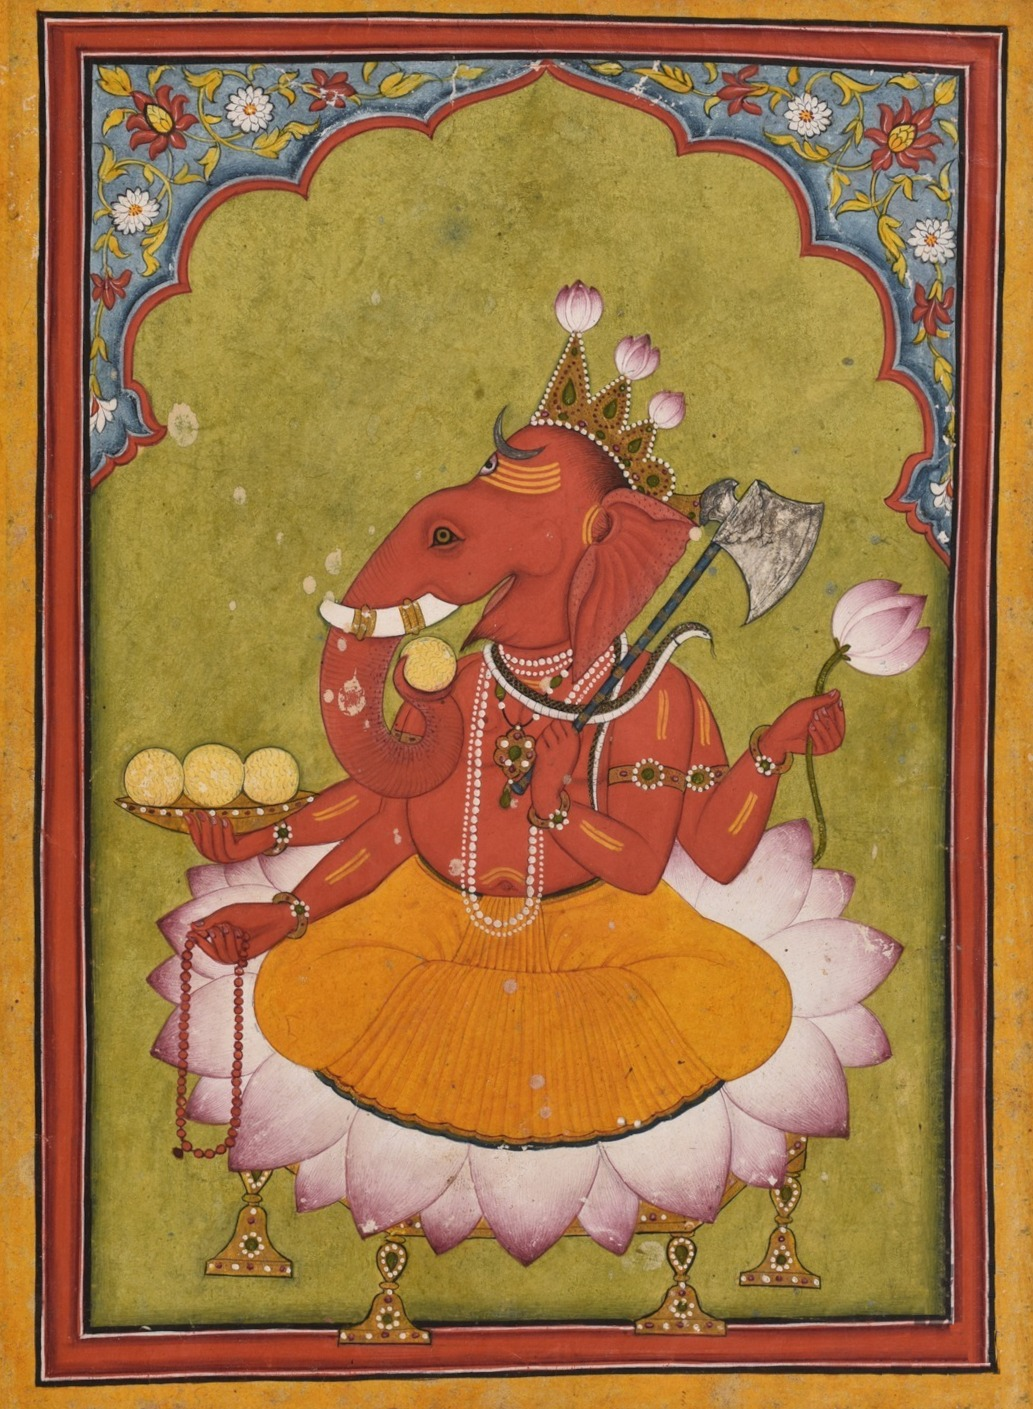 https://upload.wikimedia.org/wikipedia/commons/6/64/Ganesha_Basohli_miniature_circa_1730_Dubost_p73.jpg